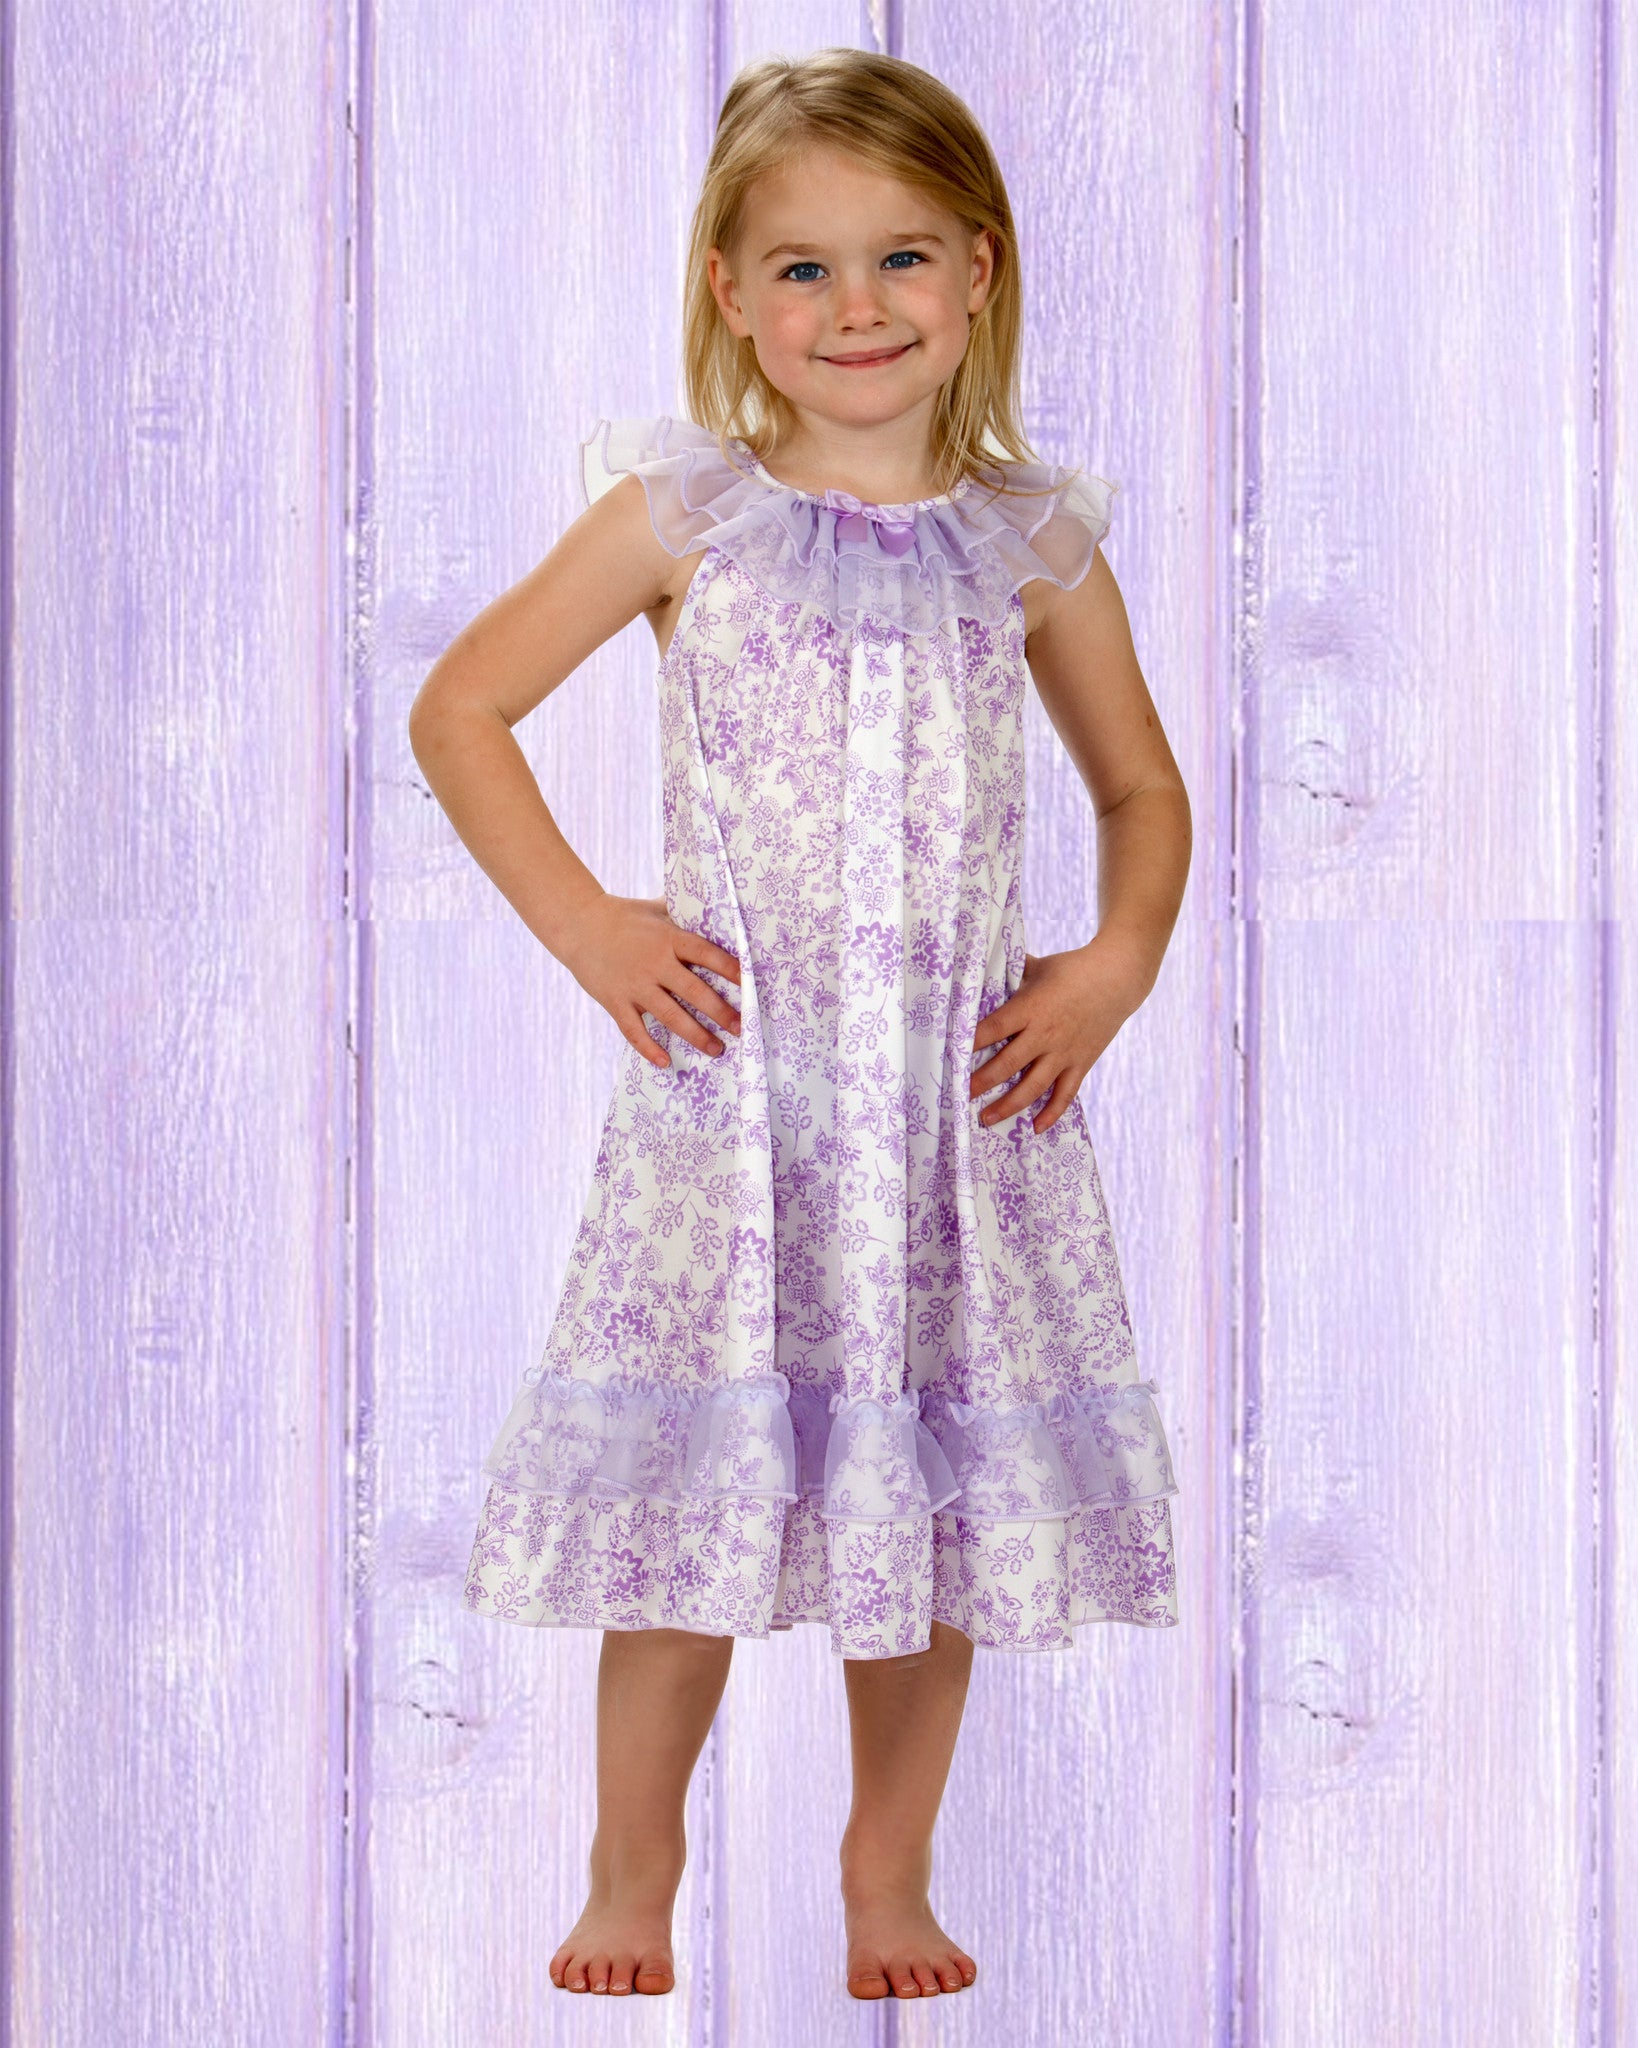 Laura Dare Lovely Lavender Floral Frilly Nightgown (2T - 10)